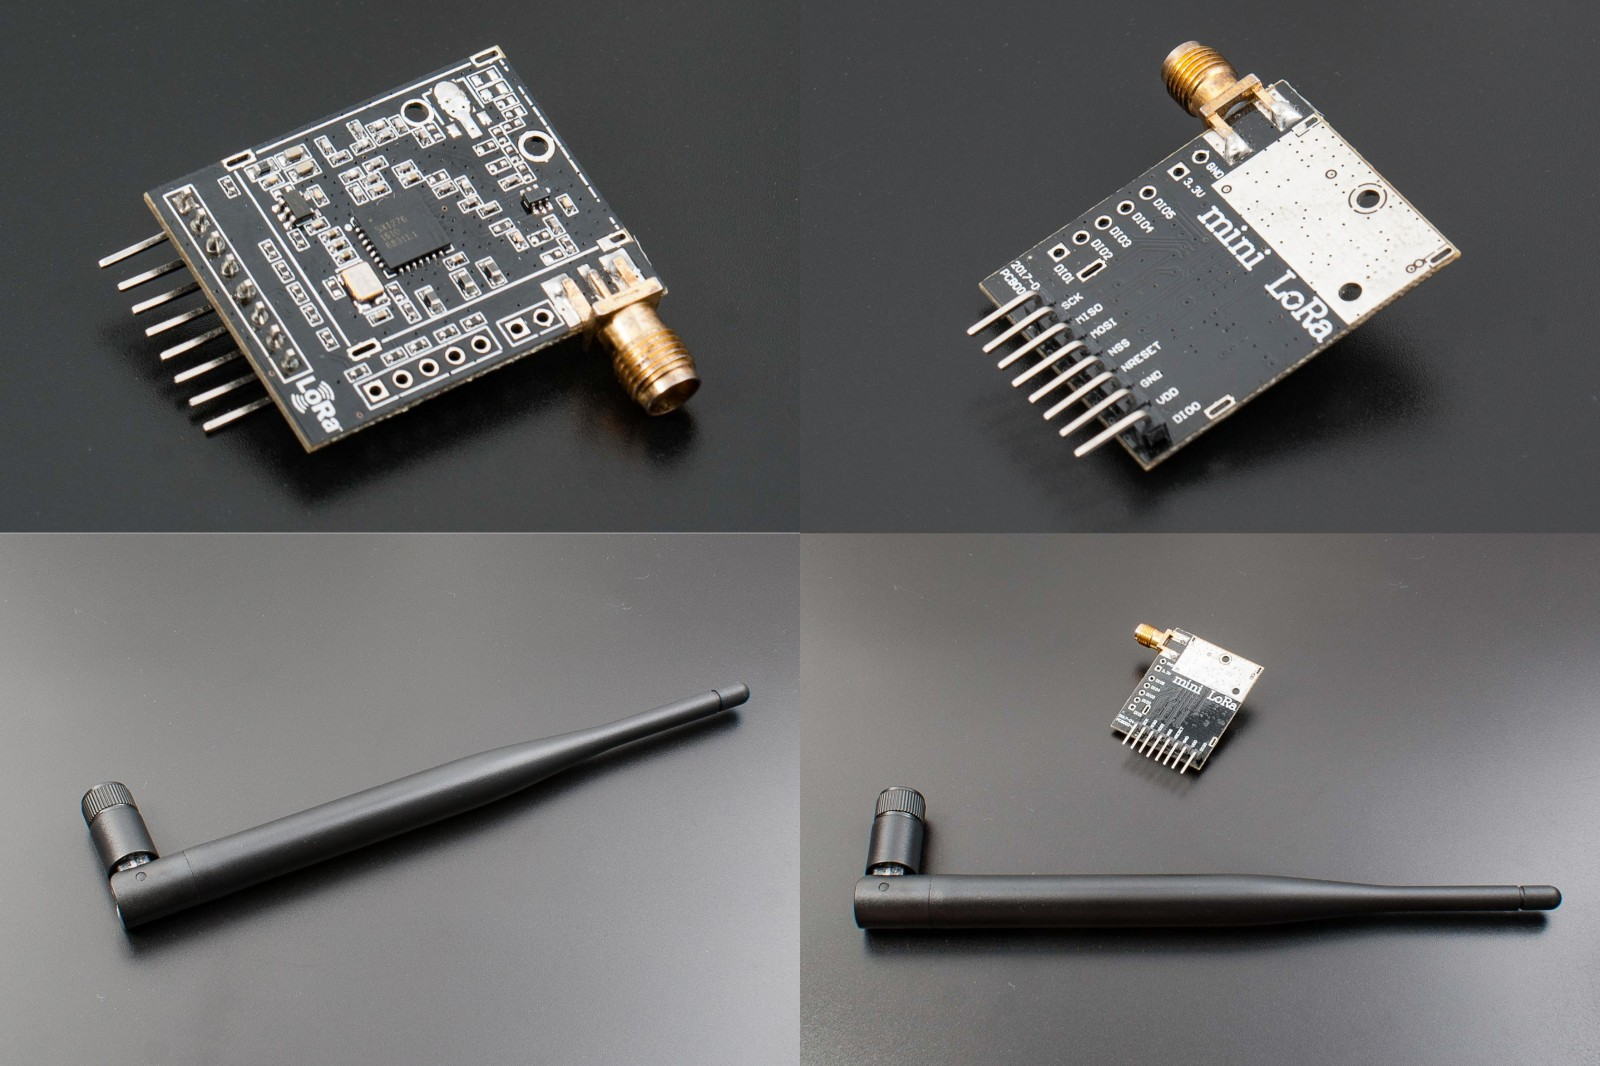 mini-LoRa-with-antenna-4in1